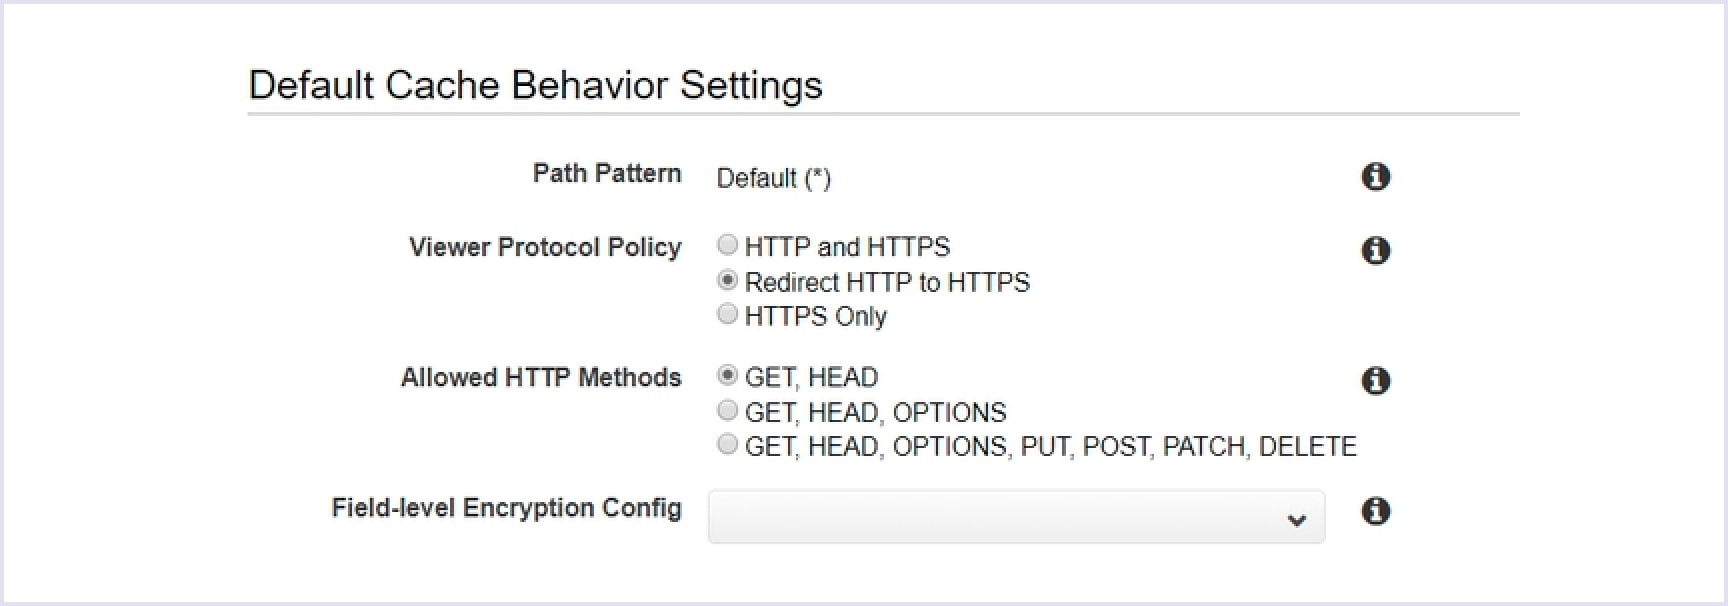 Choosing HTTPS for viewer protocol policy to serve a website over SSL